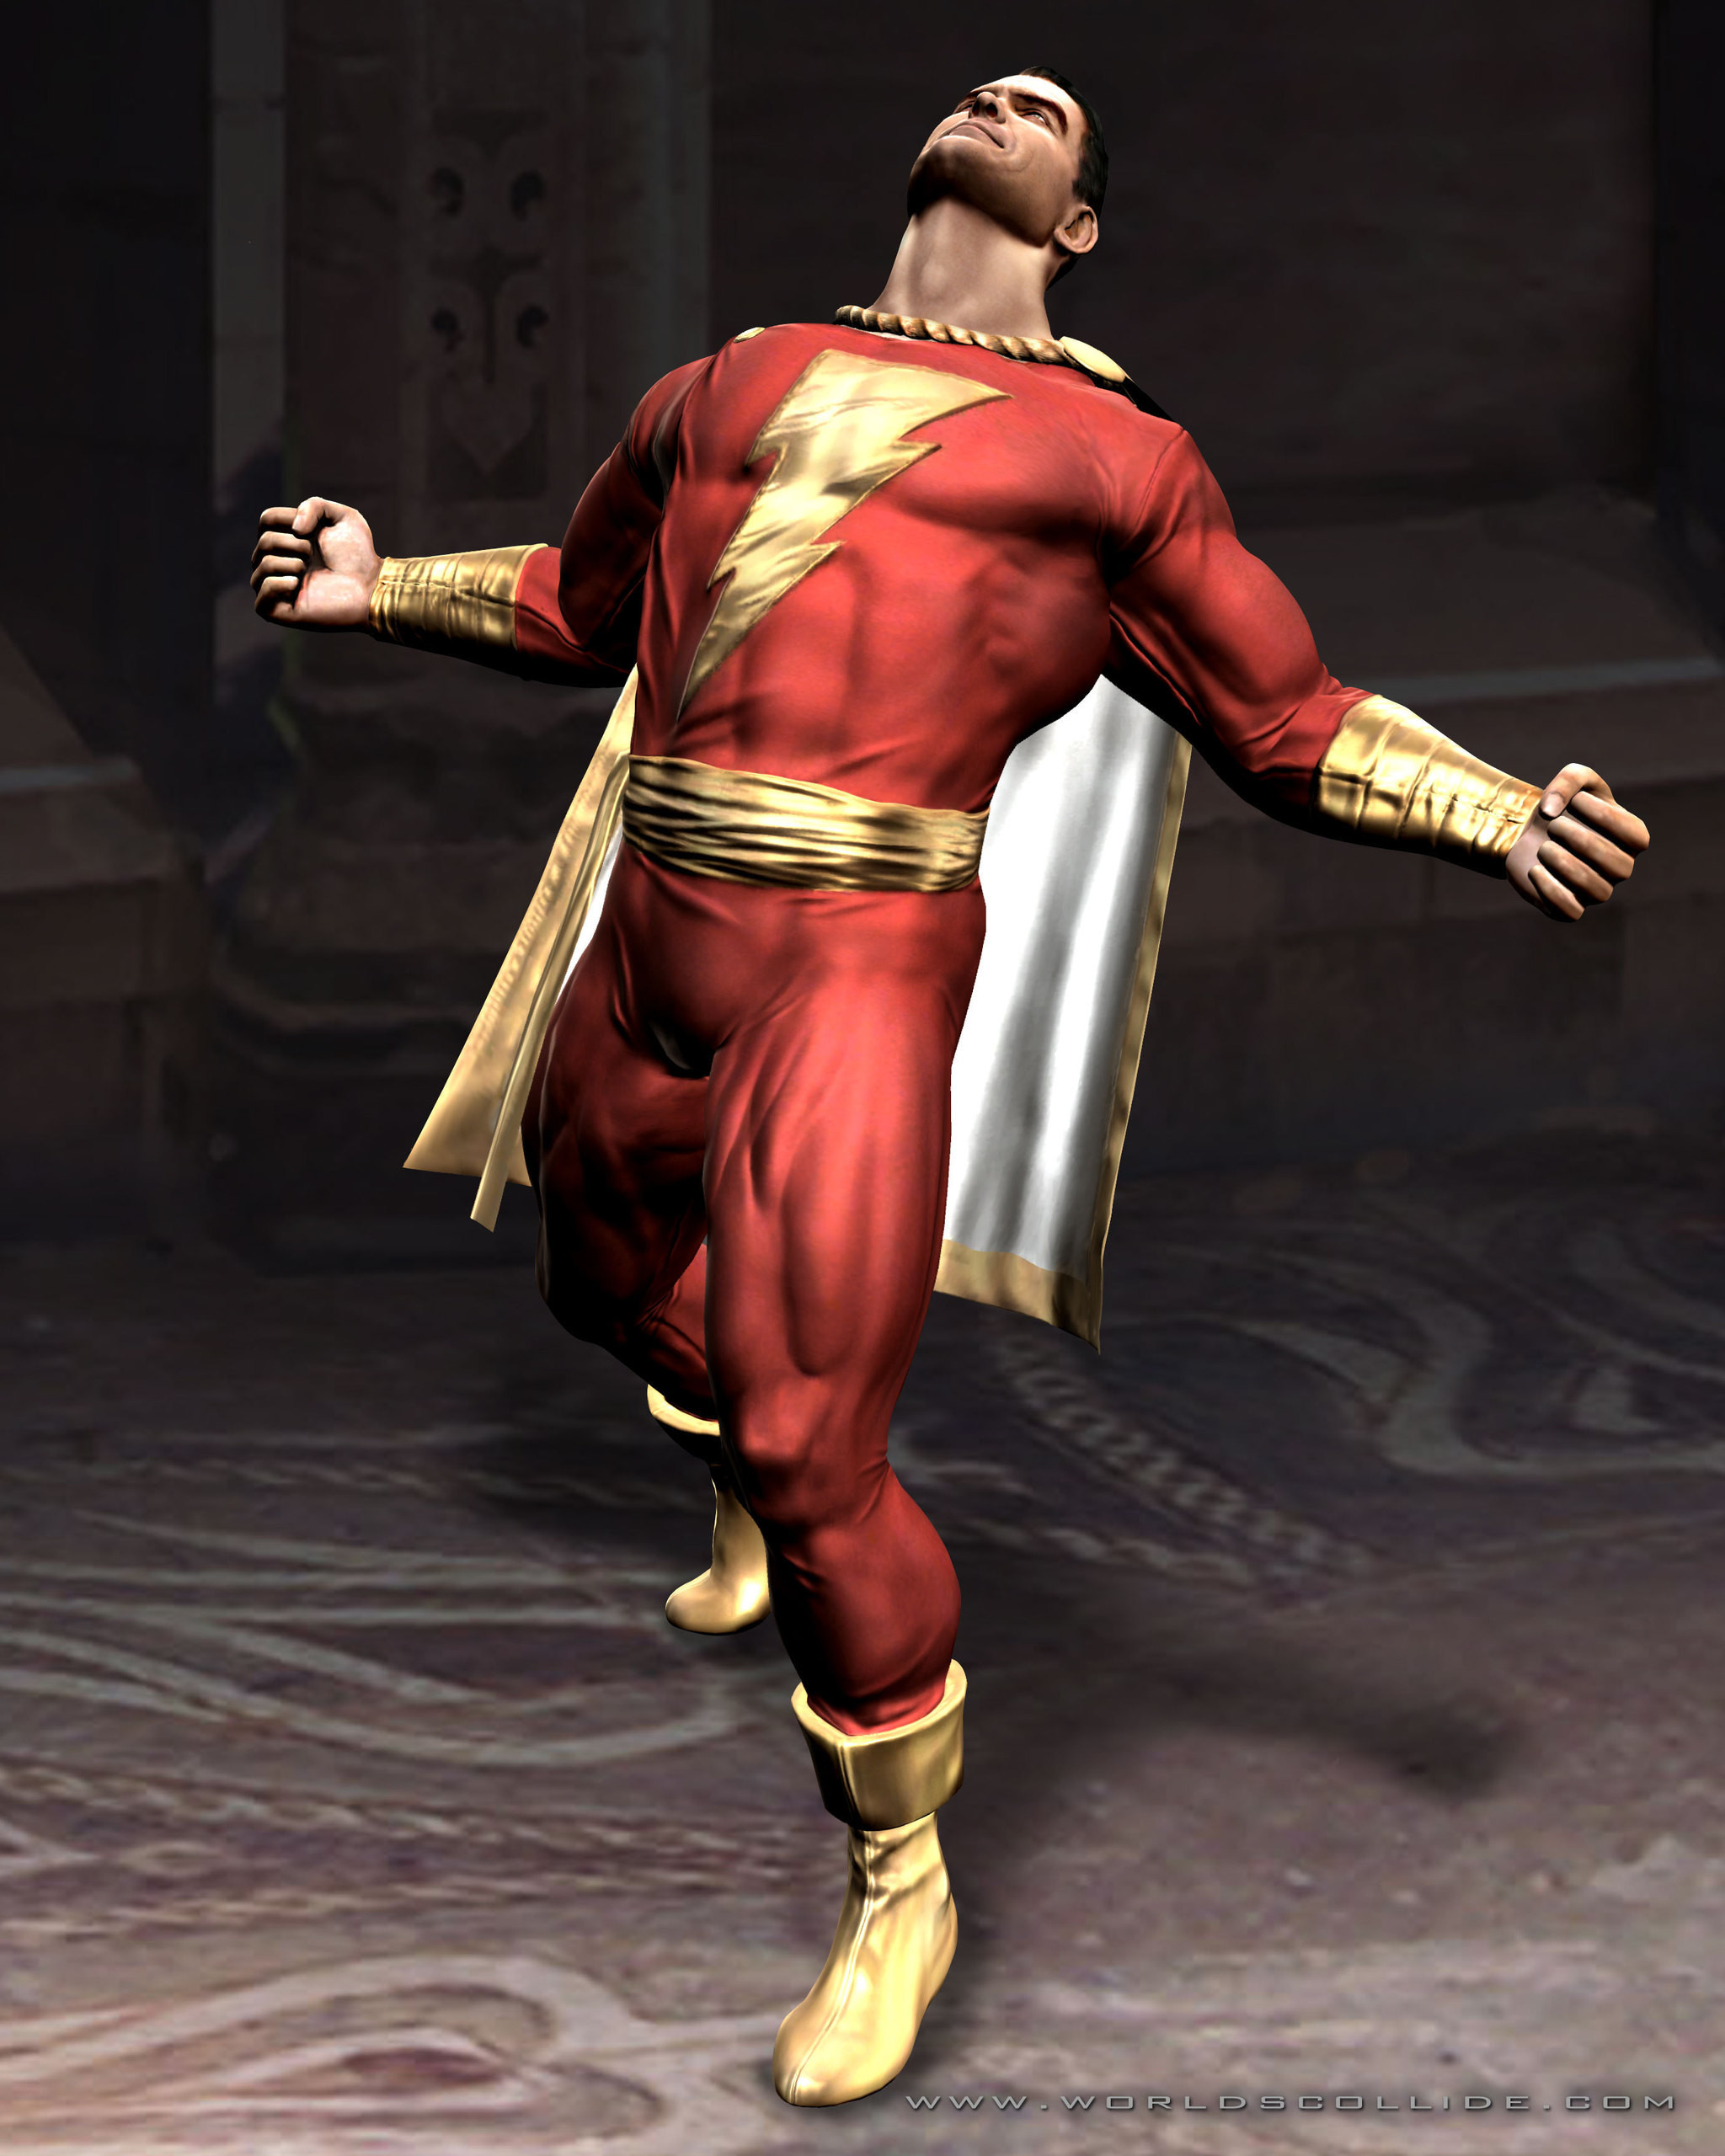 MK vs DC images Shazam HD wallpaper and background photos